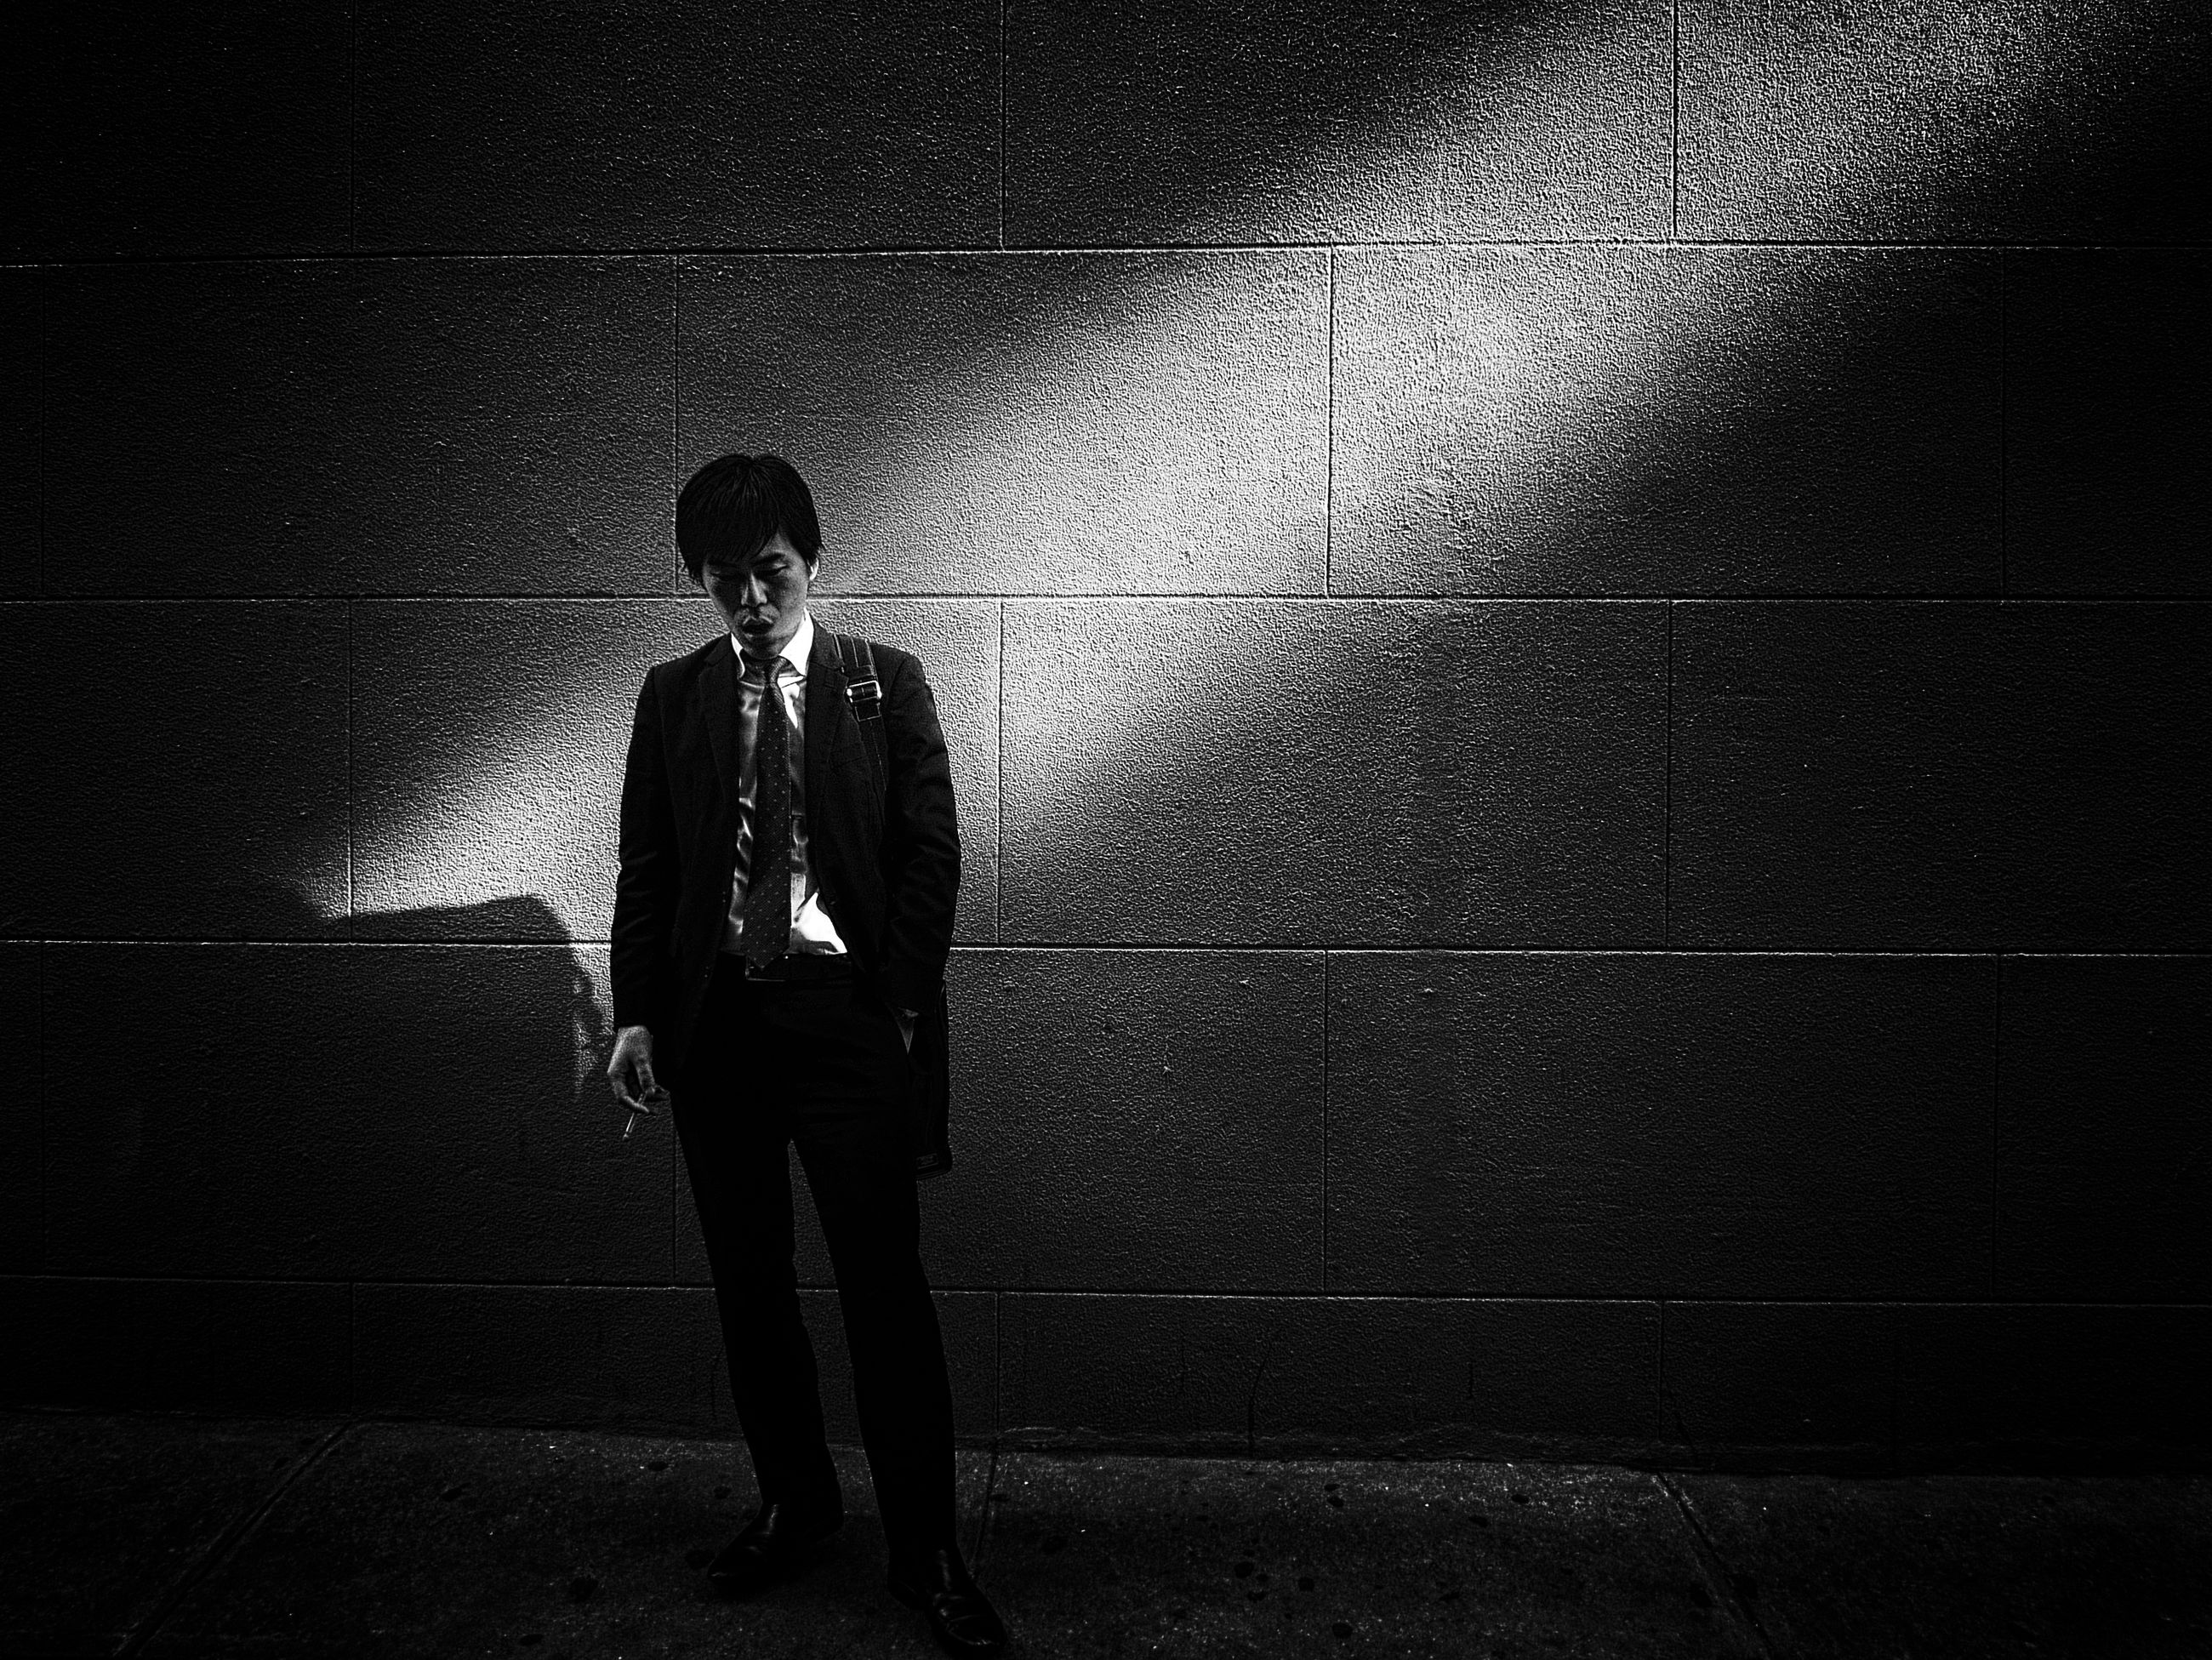 one person, real people, wall - building feature, standing, full length, lifestyles, men, leisure activity, front view, young adult, footpath, casual clothing, young men, night, shadow, architecture, dark, adult, teenager, depression - sadness, waiting